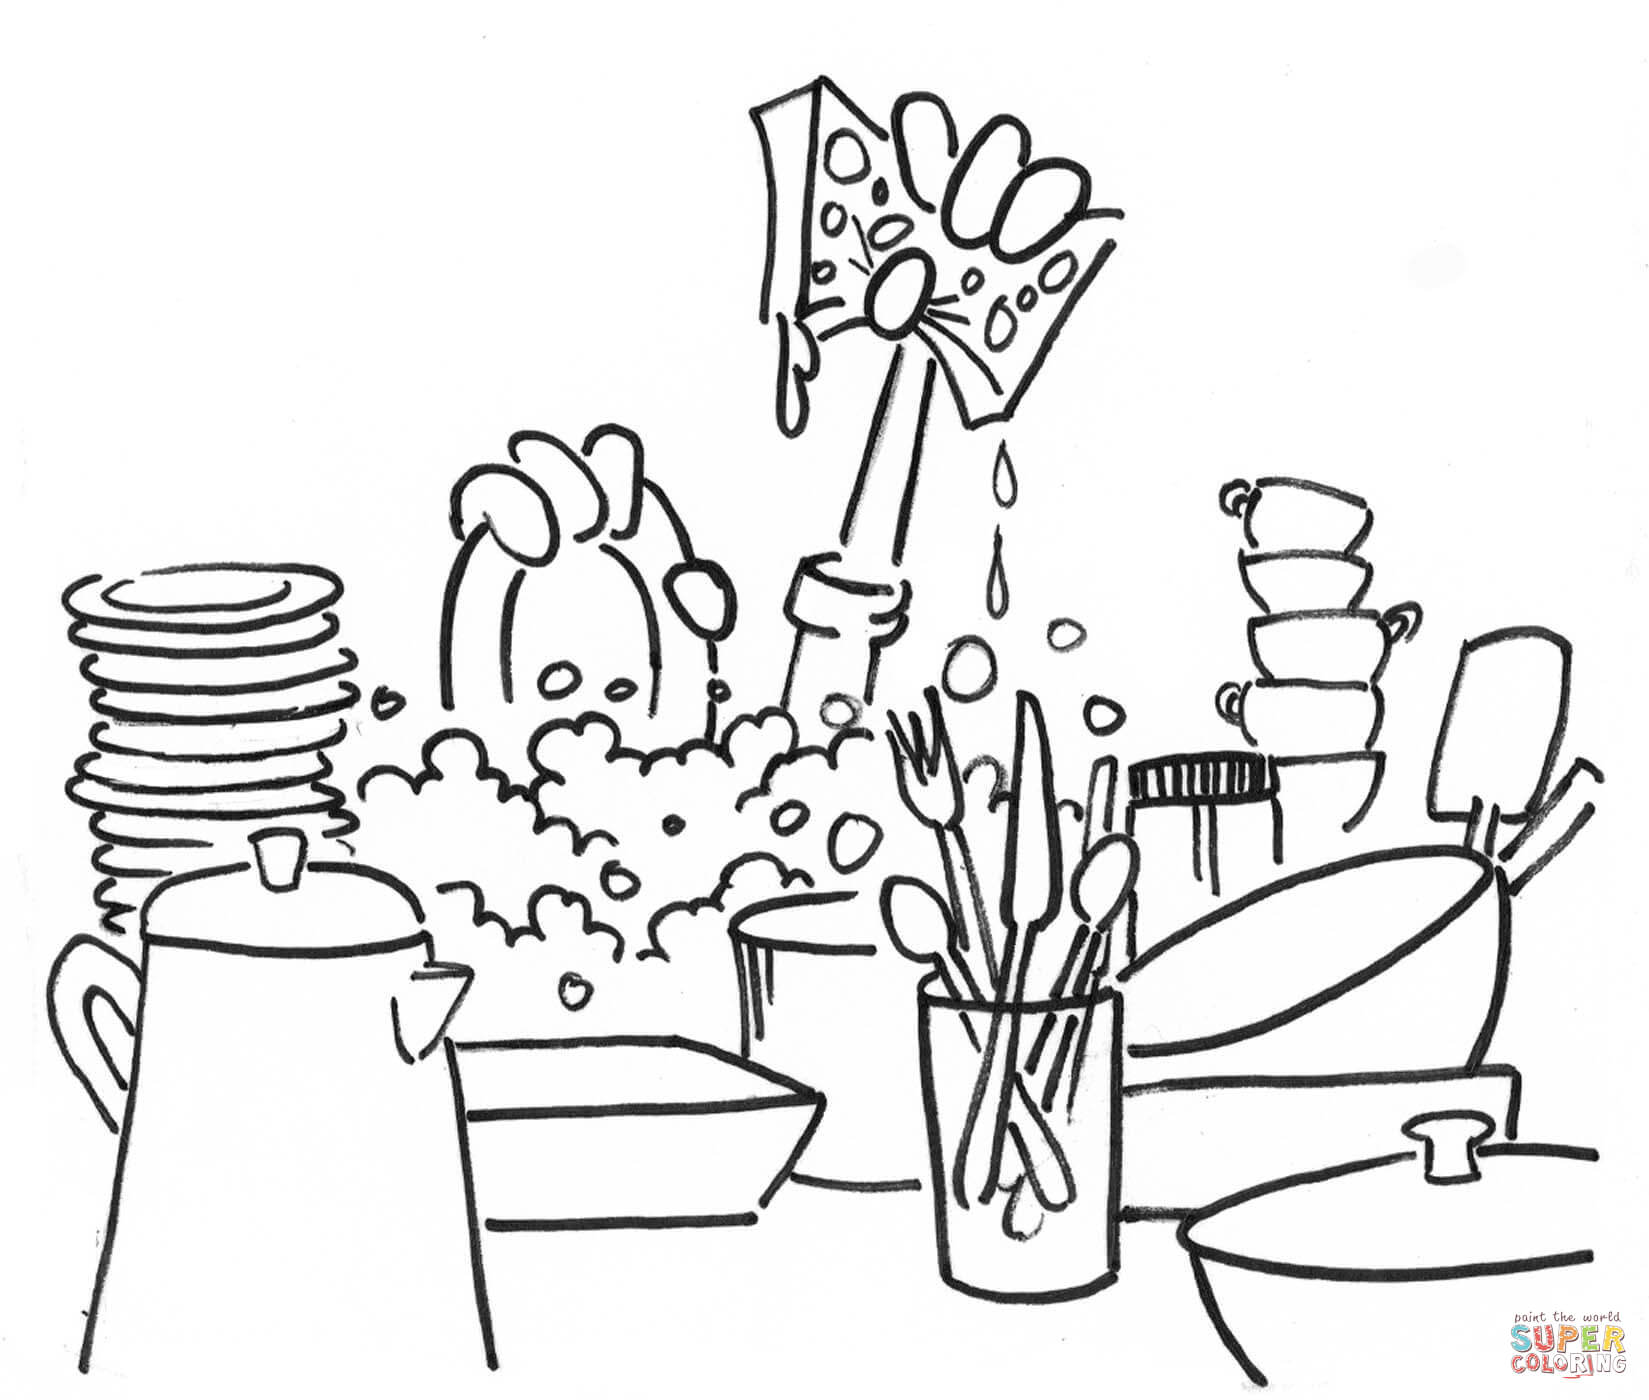 Washing Dishes Coloring Page